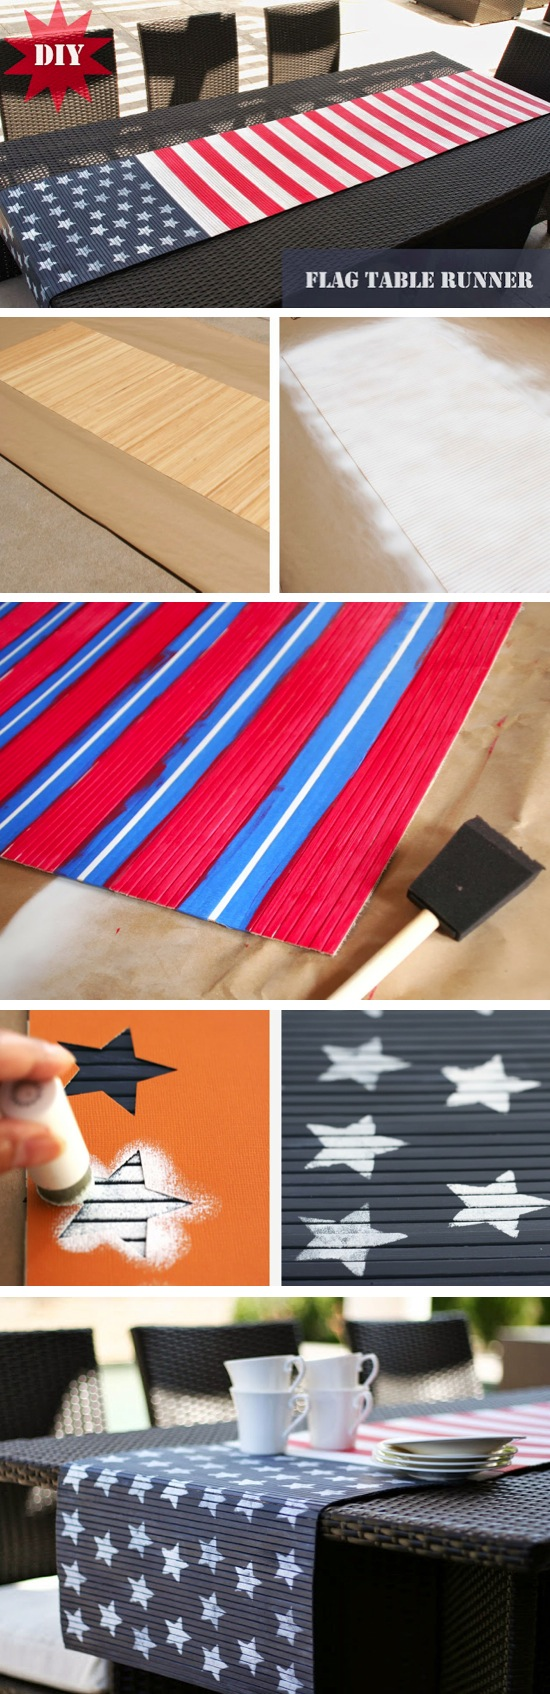 DIY American Flag Table Runner | Craft By Photo